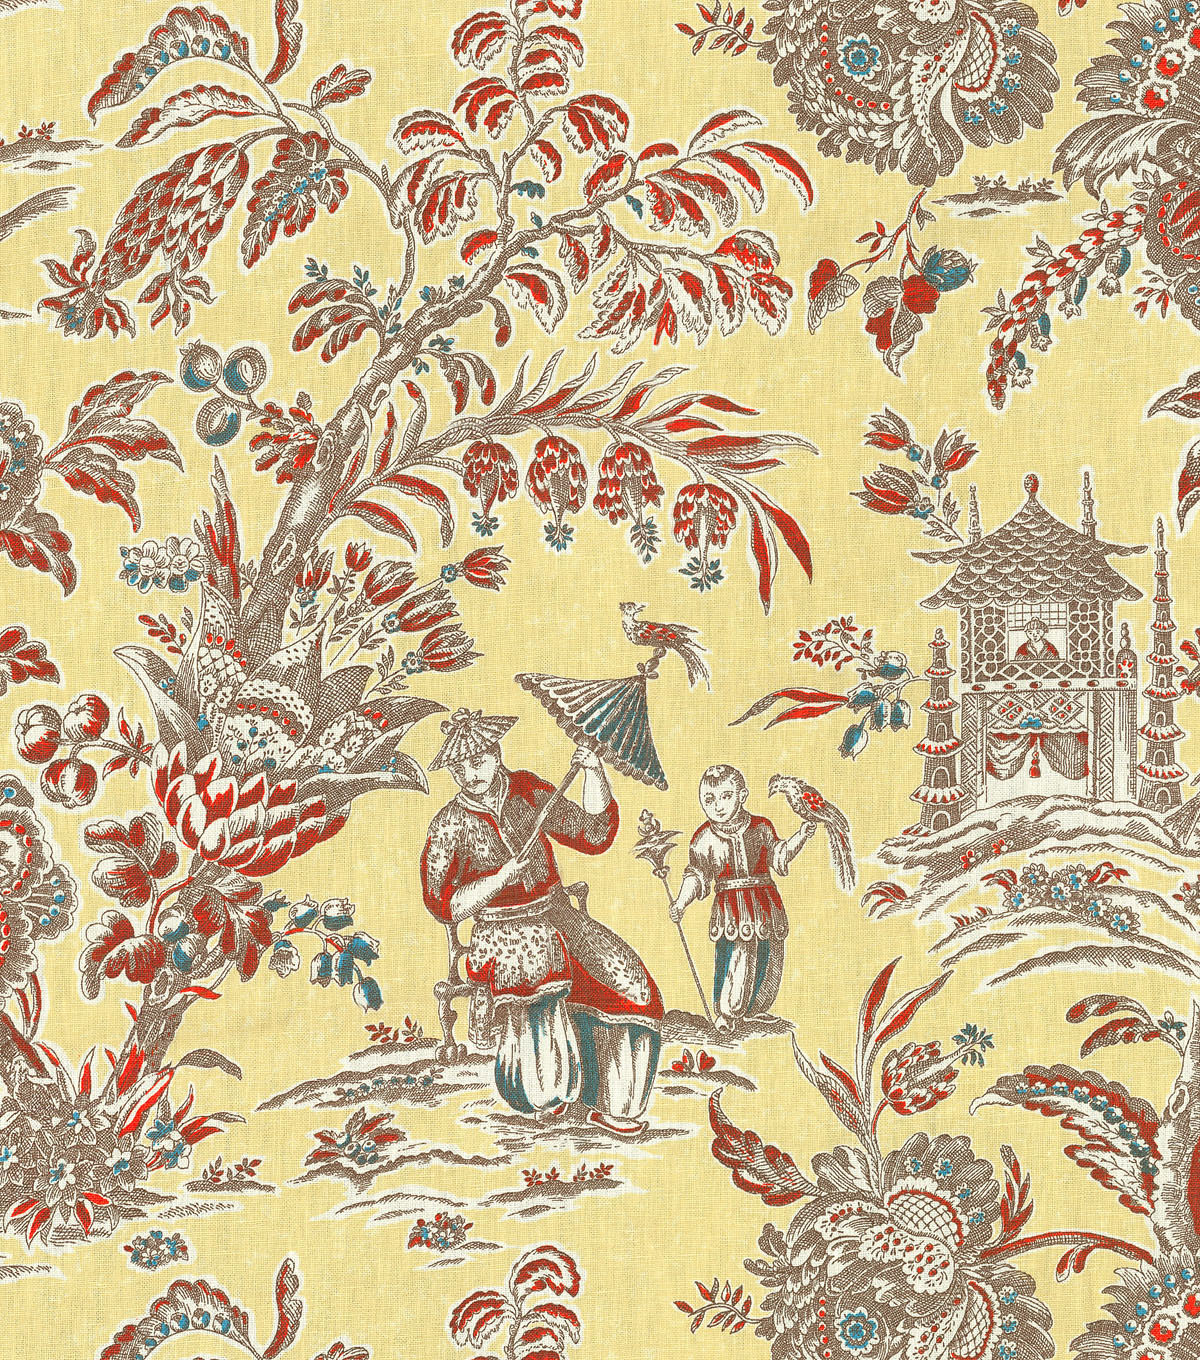 P/K Lifestyles Lightweight Decor Fabric 54\u0022 Asian Arcadia/Persimmon